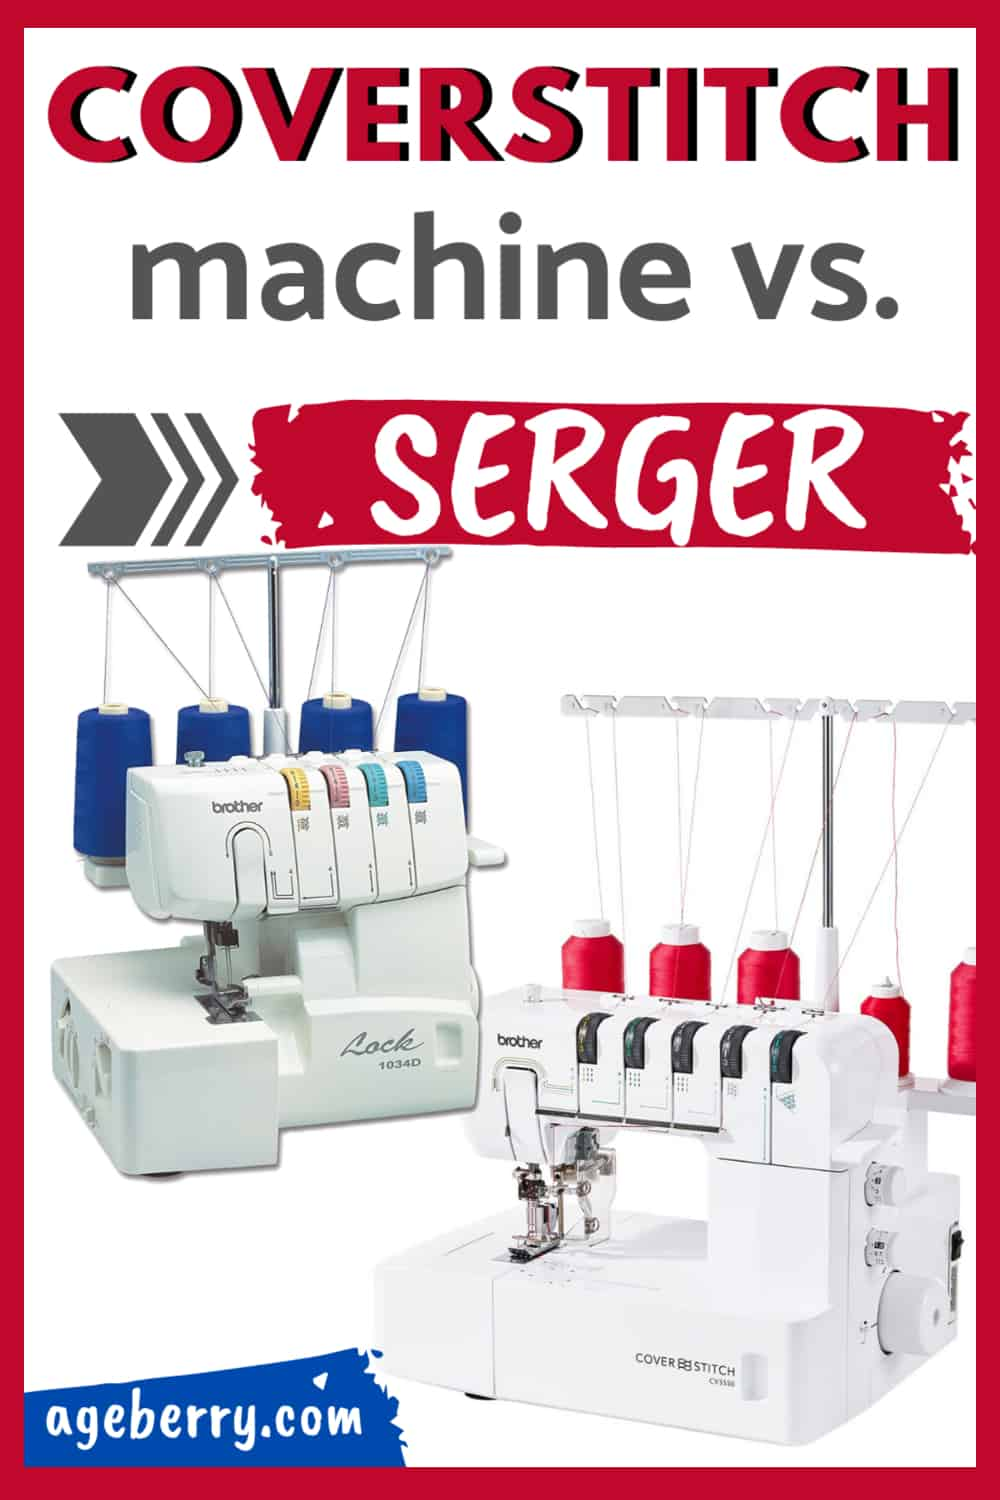 coverstitch vs. serger